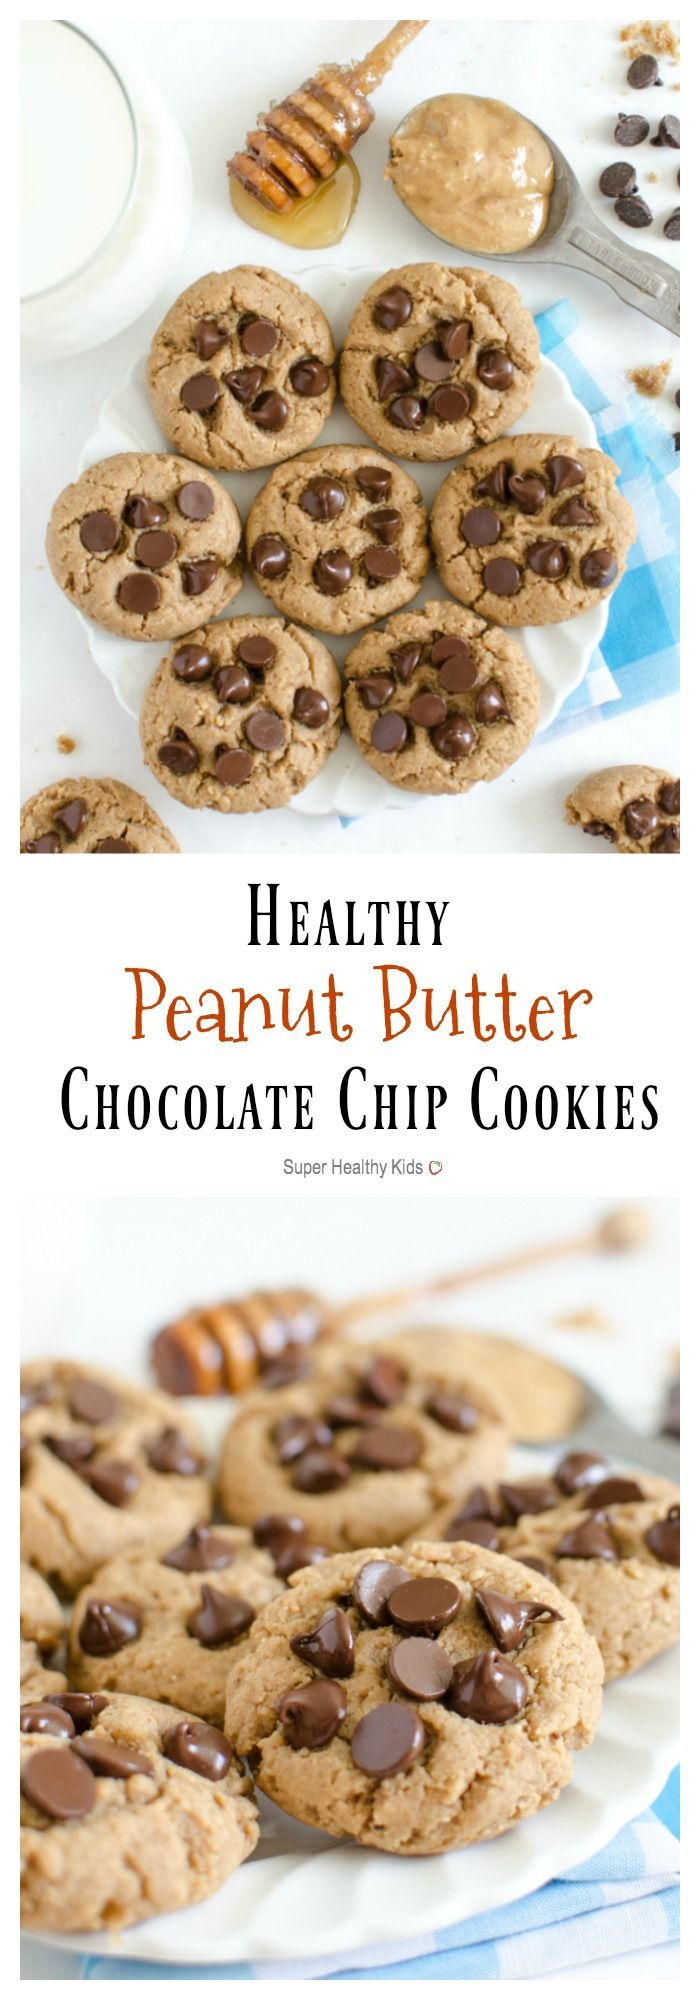 FOOD - Healthy Peanut Butter Chocolate Chip Cookies made with honey, peanut butter, and whole wheat flour are a healthy dessert recipe the whole family will love. http://www.superhealthykids.com/healthy-peanut-butter-chocolate-chip-cookies/